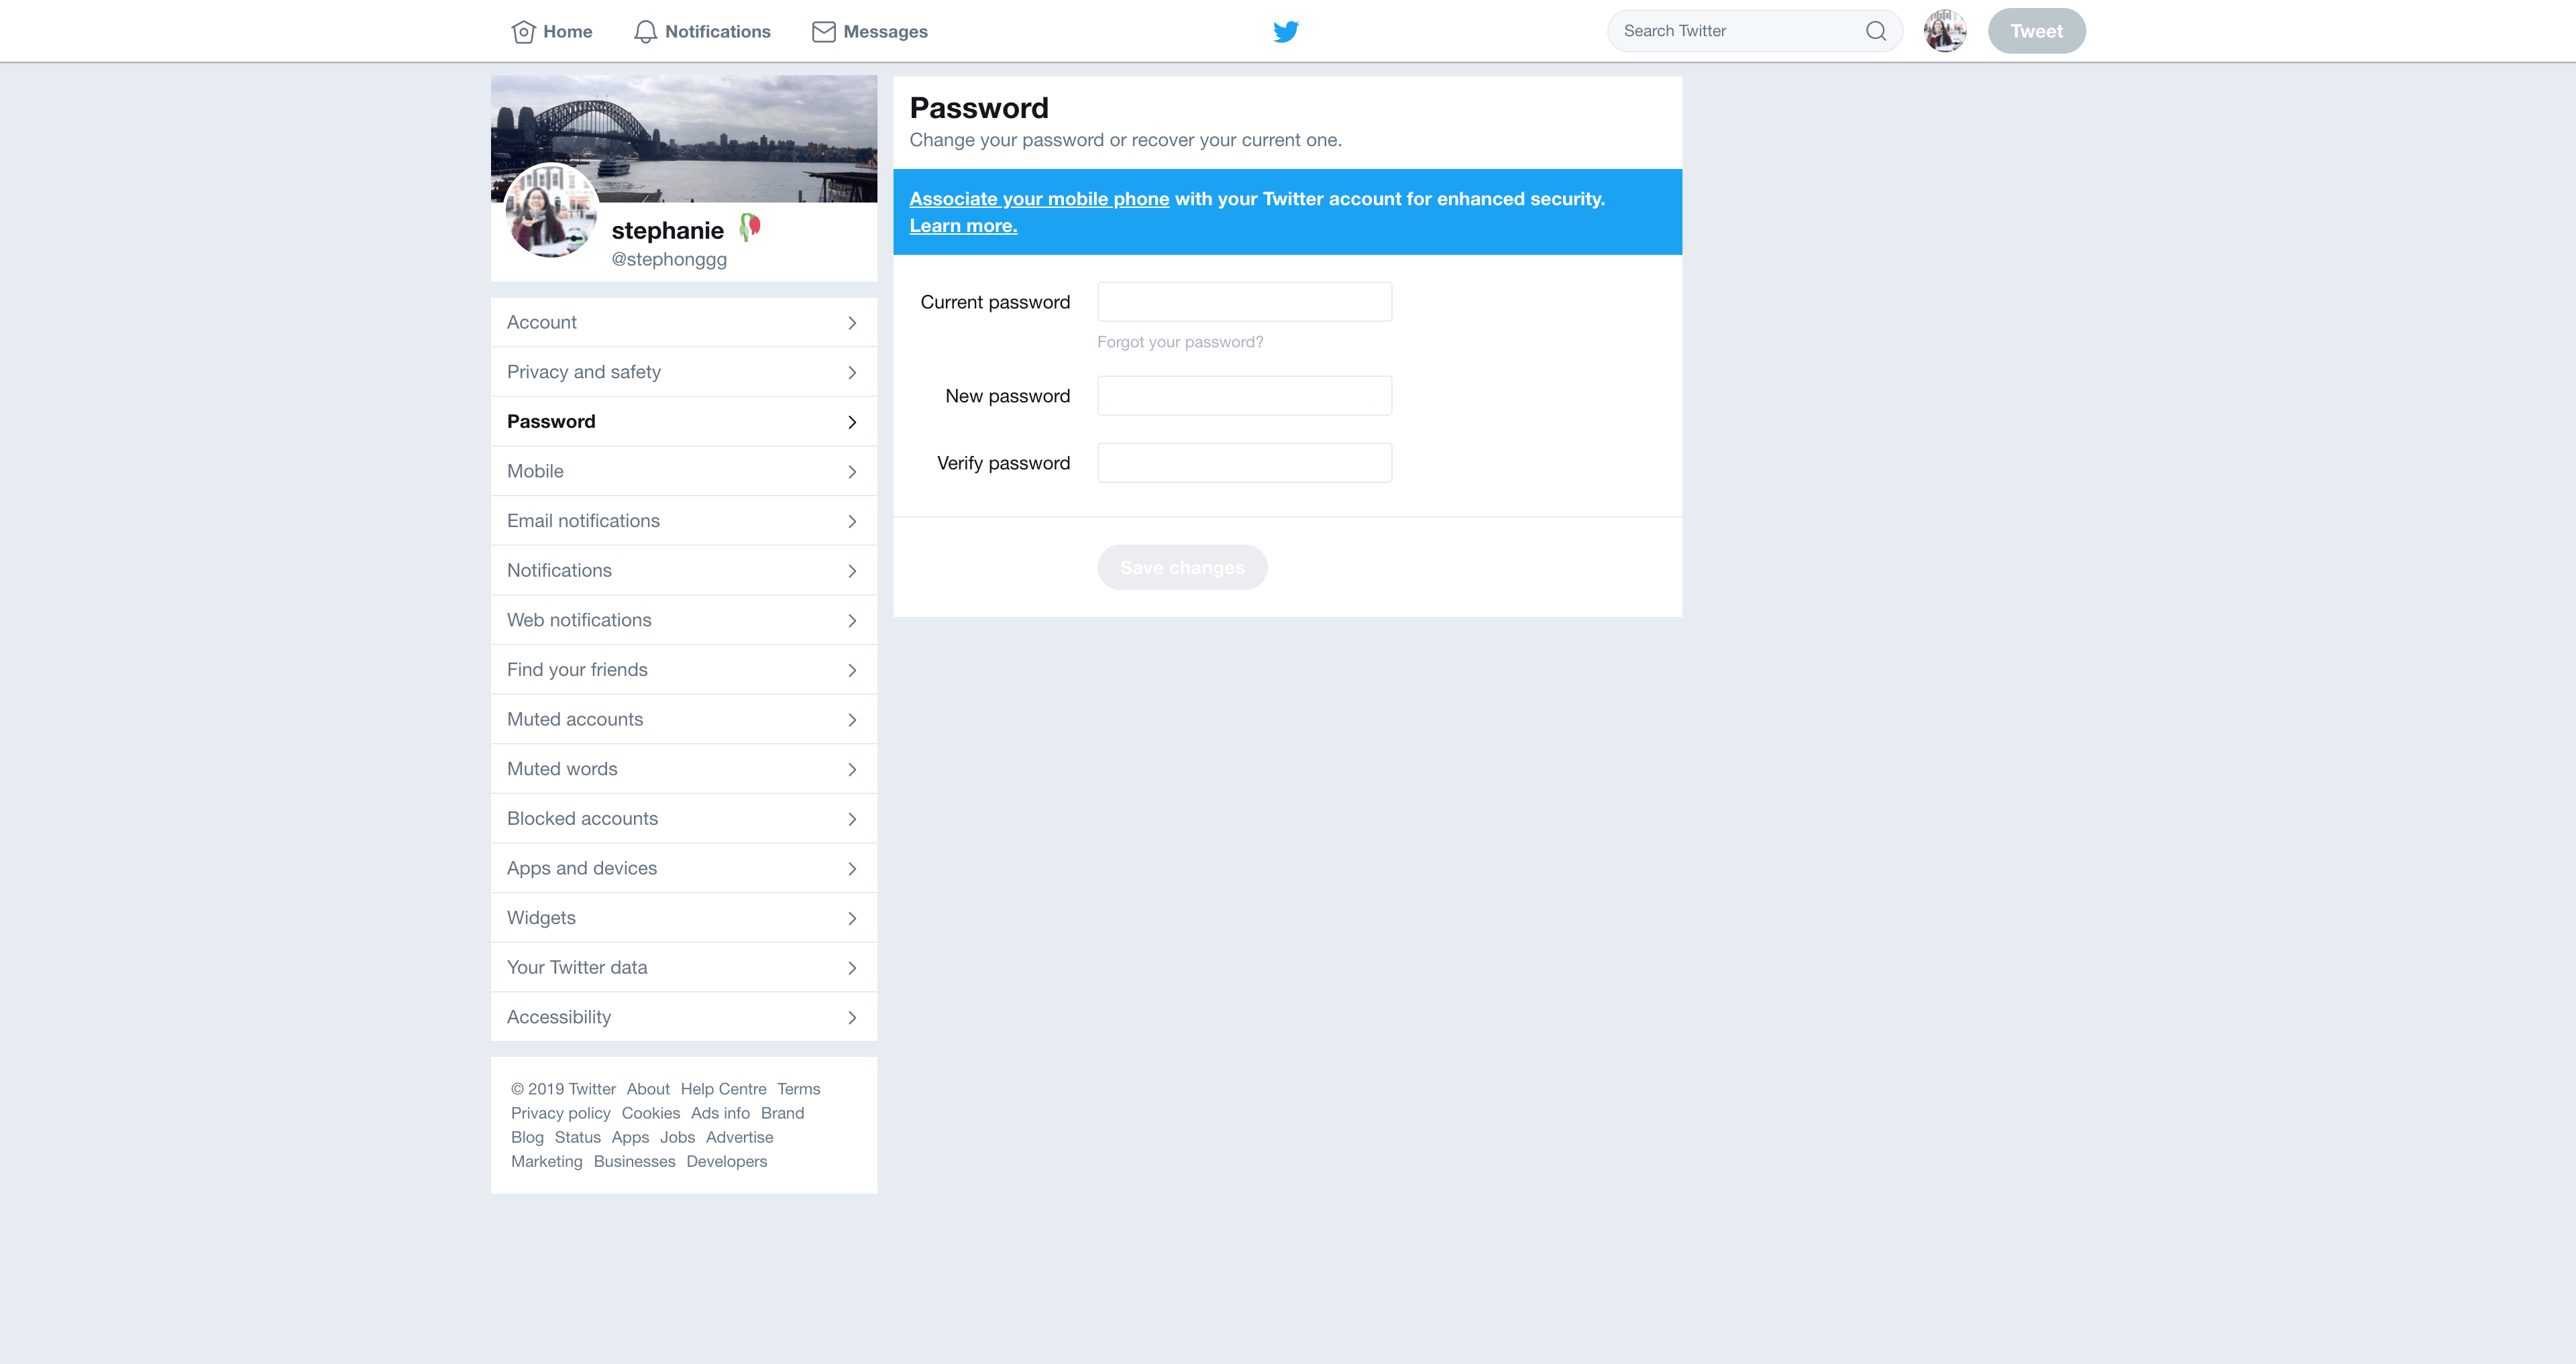 Password Settings by Twitter